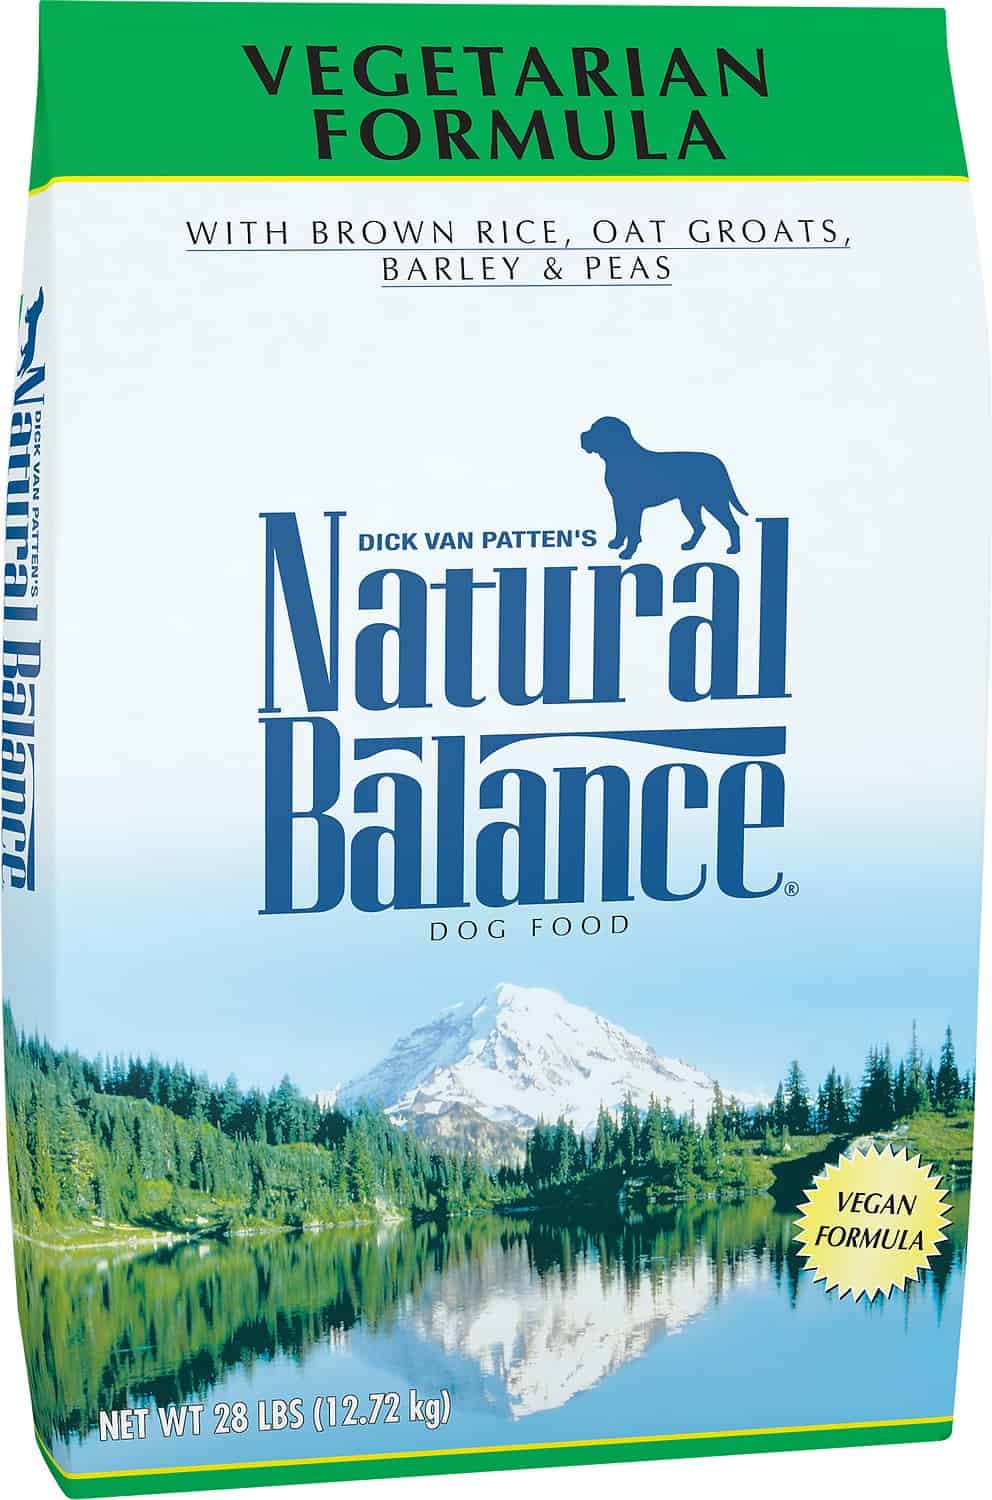 Natural Balance Dog Food Review 2021: Best High Quality Pet Food? 21